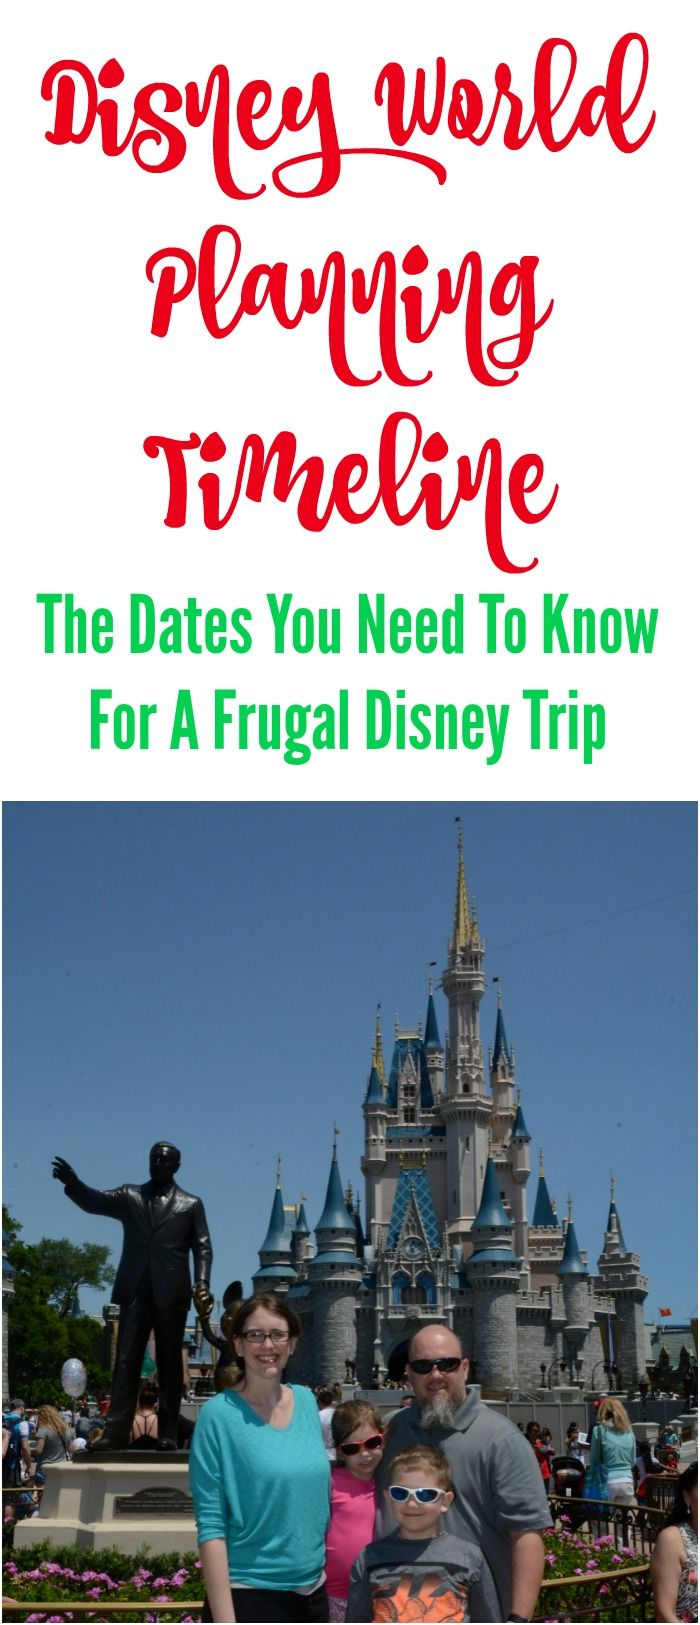 Disney World Planning Timeline: The Dates You Need To Know For A Frugal Disney Vacation